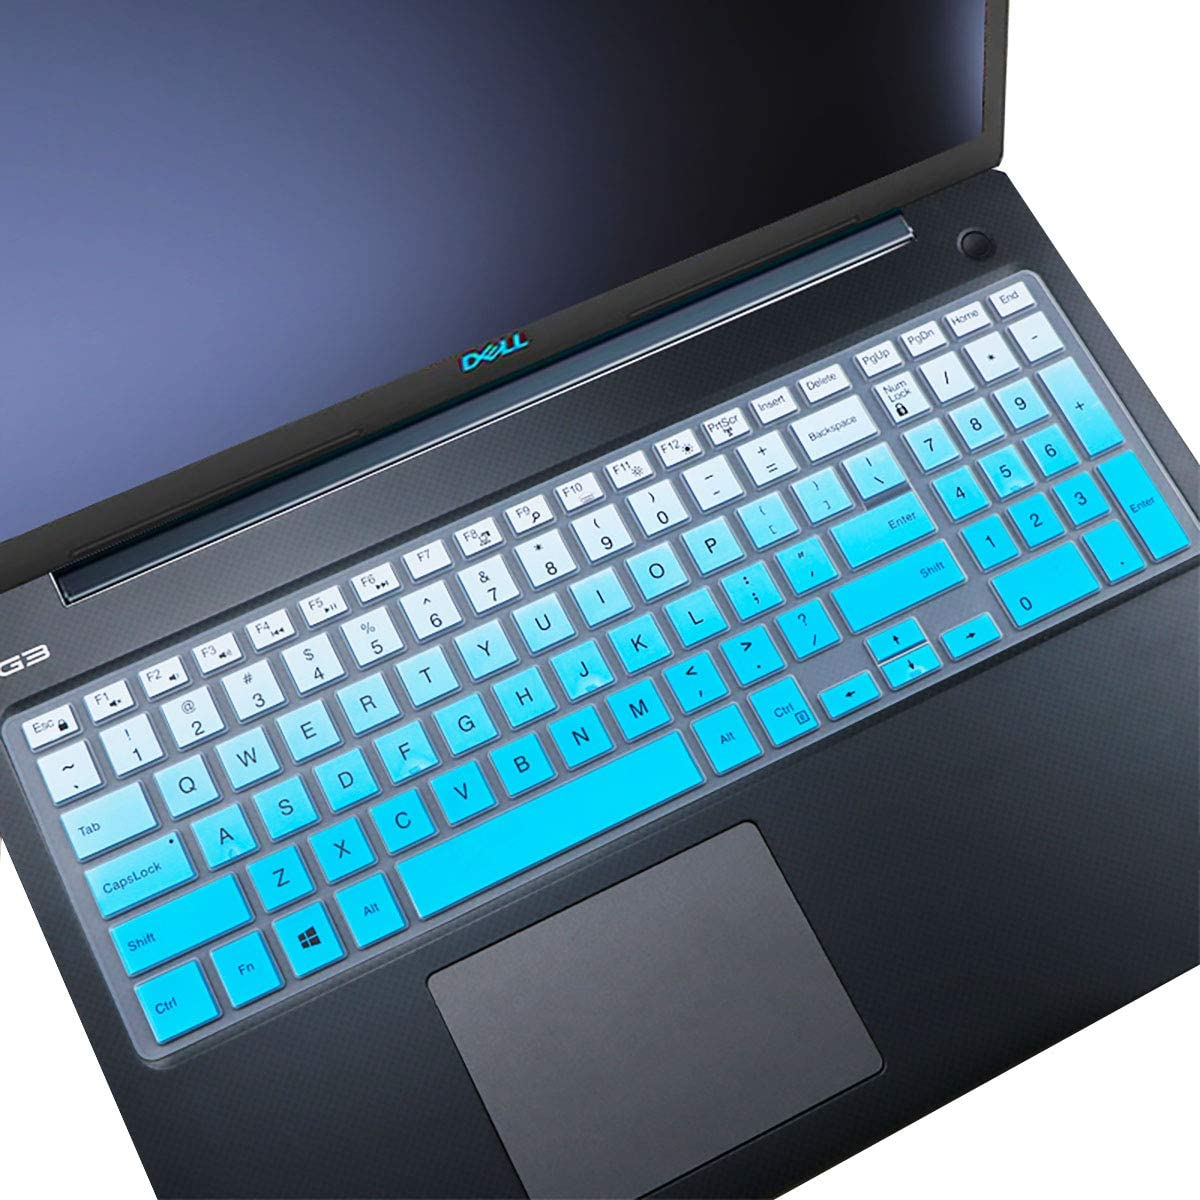 Keyboard Cover fit Dell Inspiron 15 3000 5000 Series/New Inspiron 17 3000 Series/Insprion 17 7786 /Dell G3 15 17 Series/New Dell G5 15 Series/Dell G7 15 17 Series- Gradual Blue